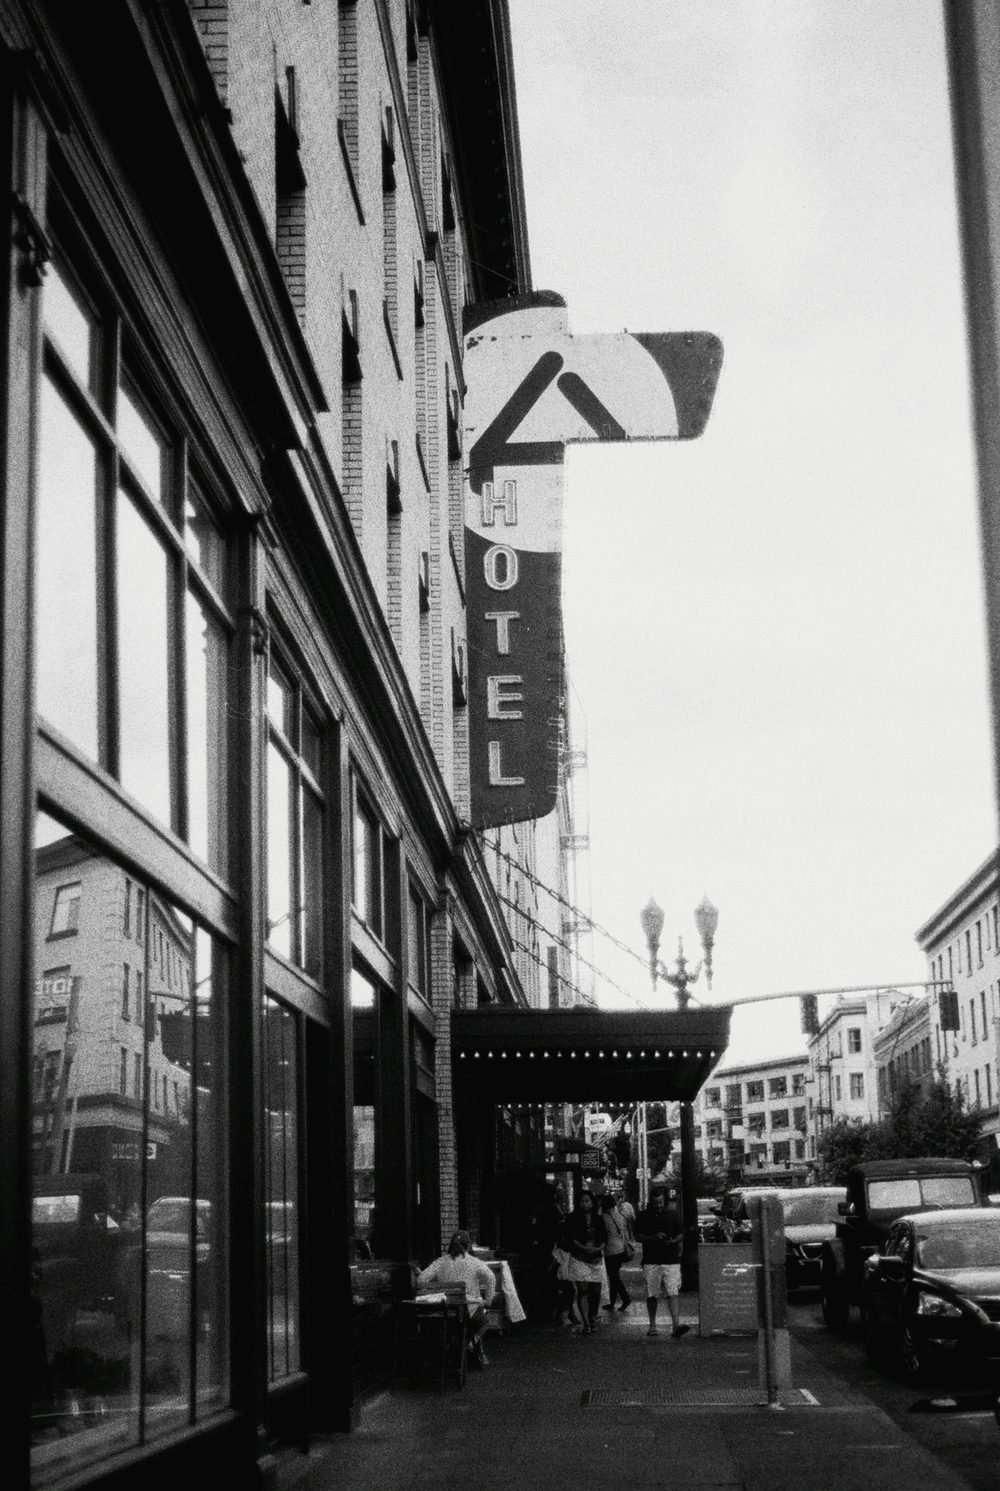 Ace Hotel Portland | Black and White Film Photography by Azzari Jarrett